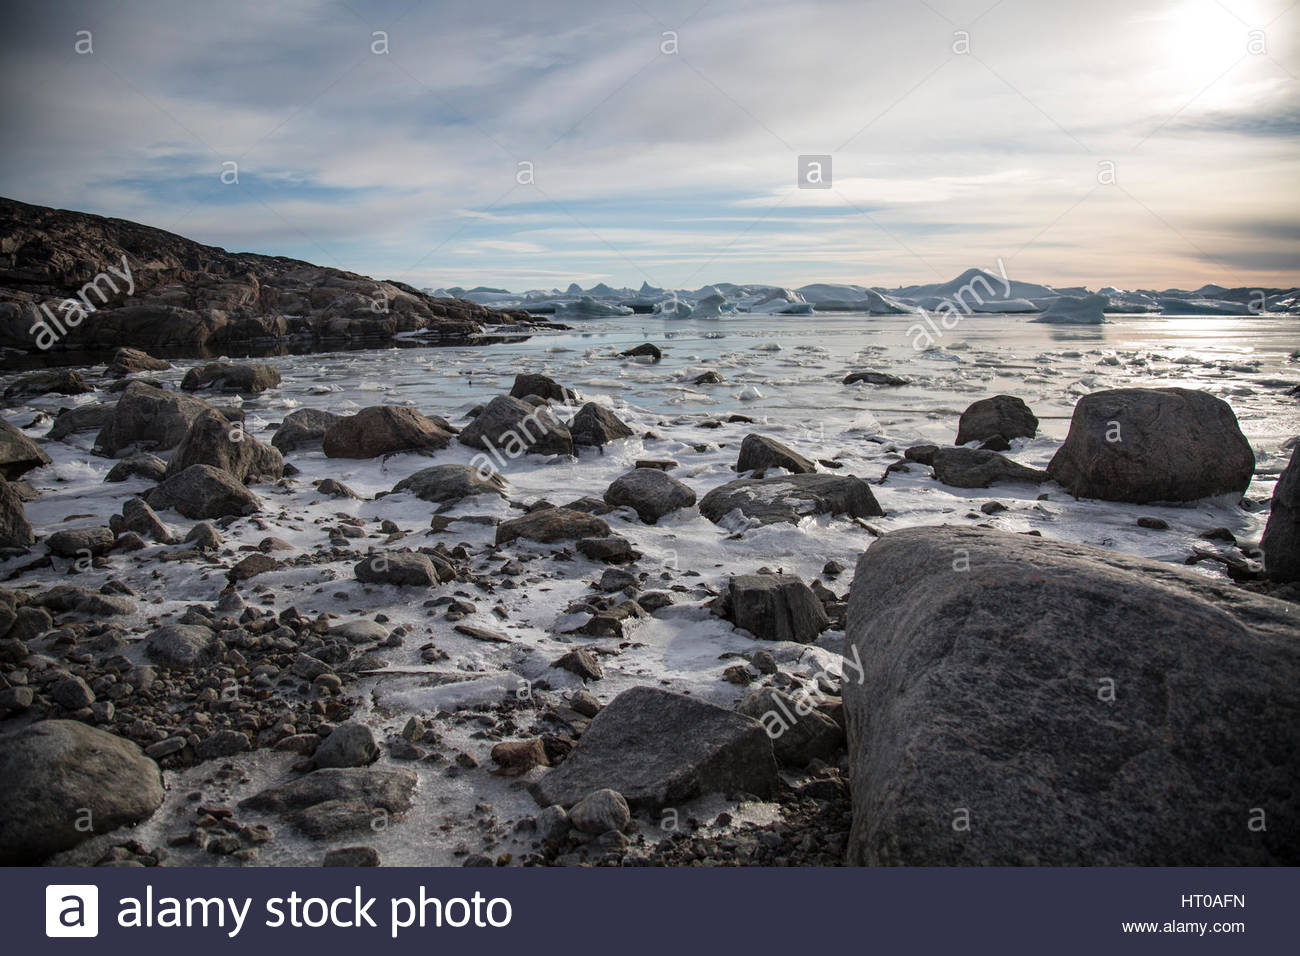 Greenland Ice fjord Beach Nearing Twighlight Stock Photo